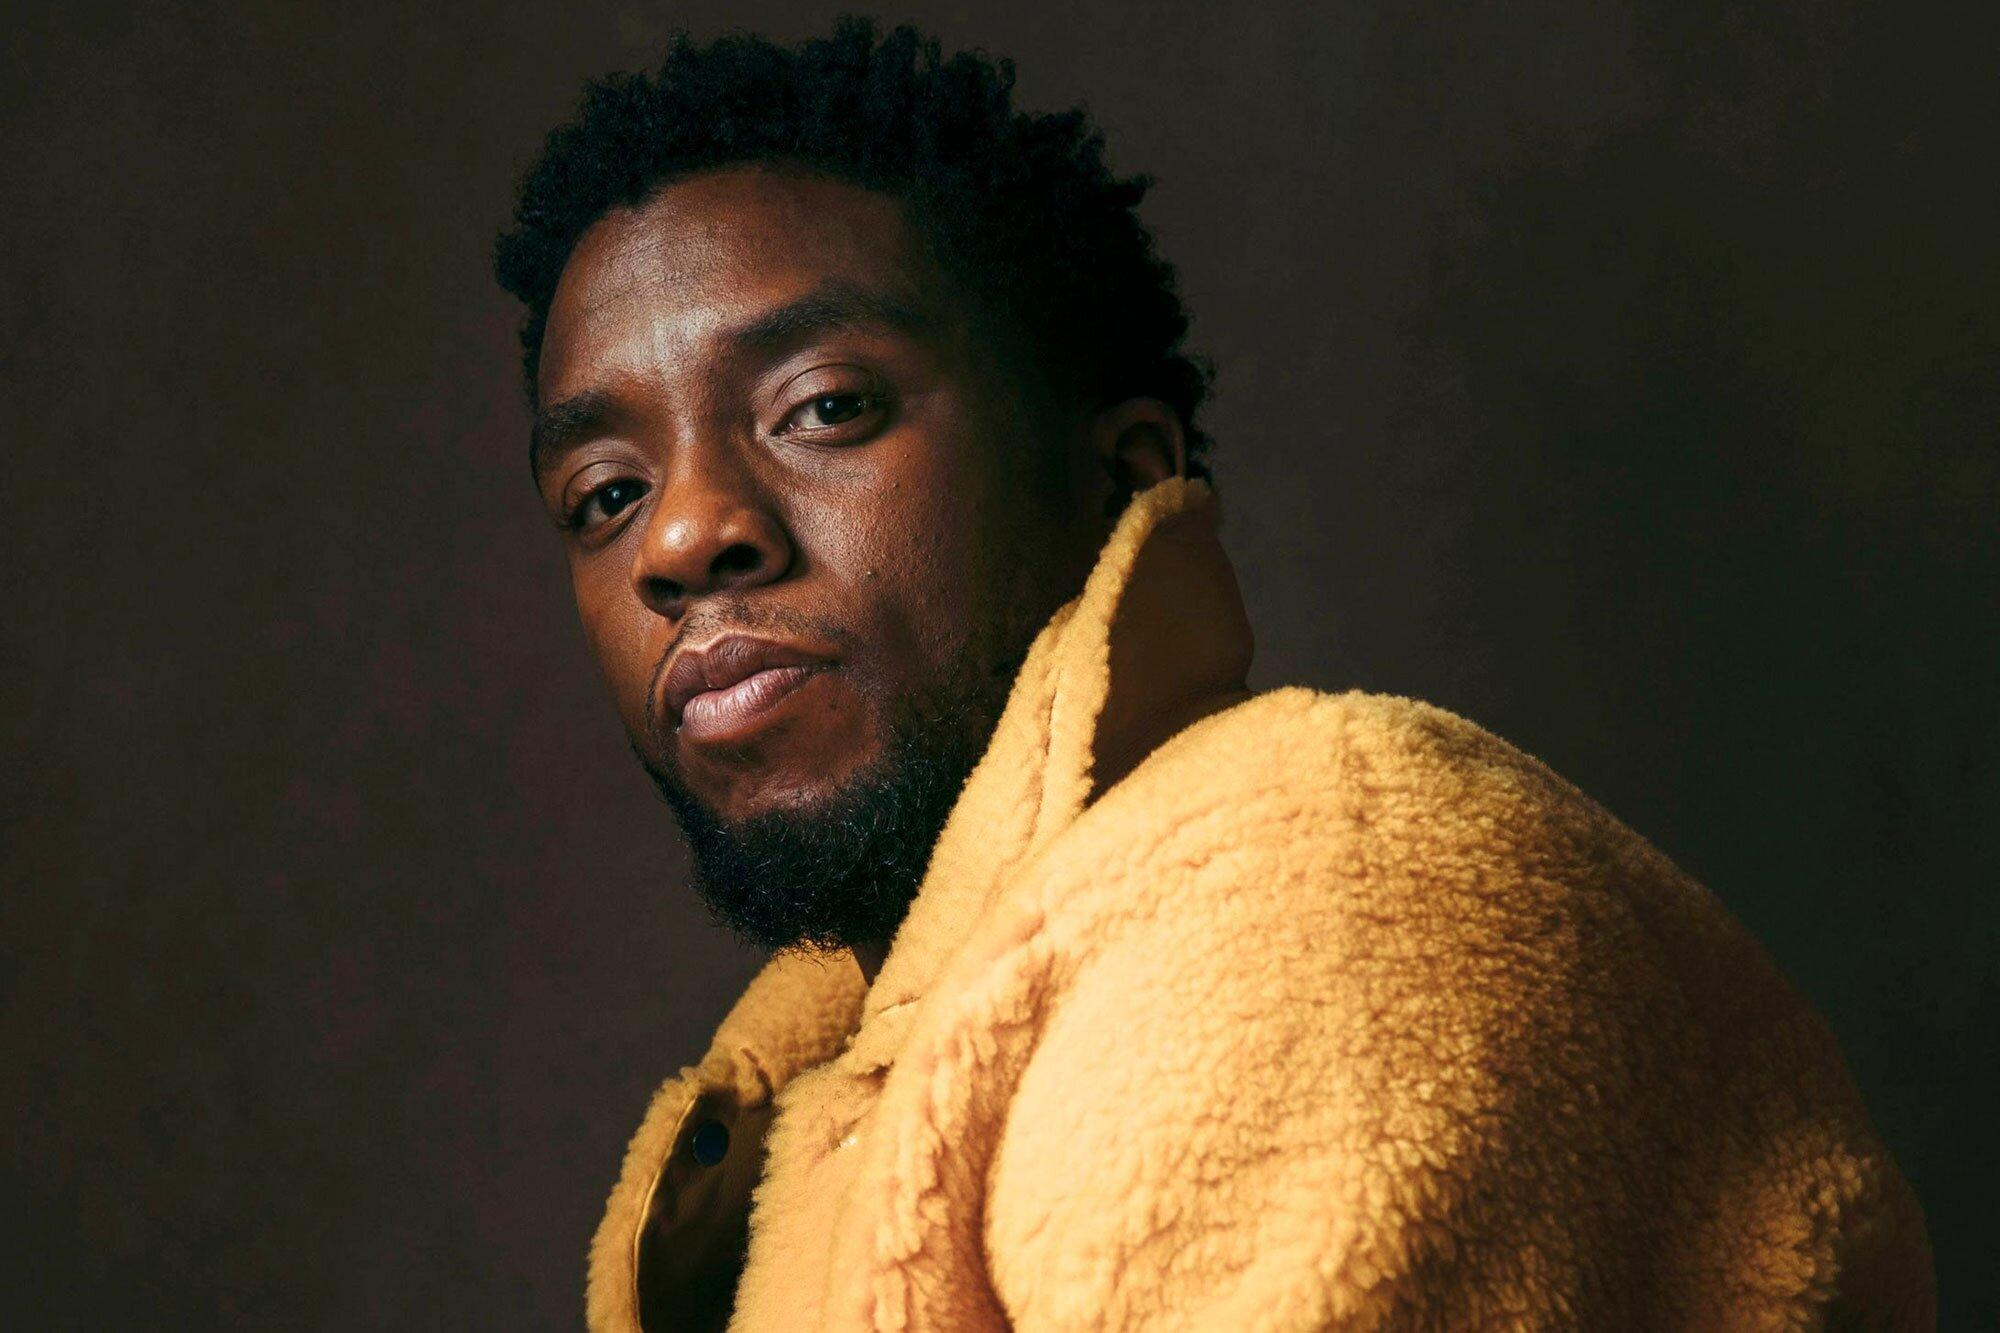 Chadwick Boseman Was 43 When He Died Of Colon Cancer And Cases In Young Adults Are Rising